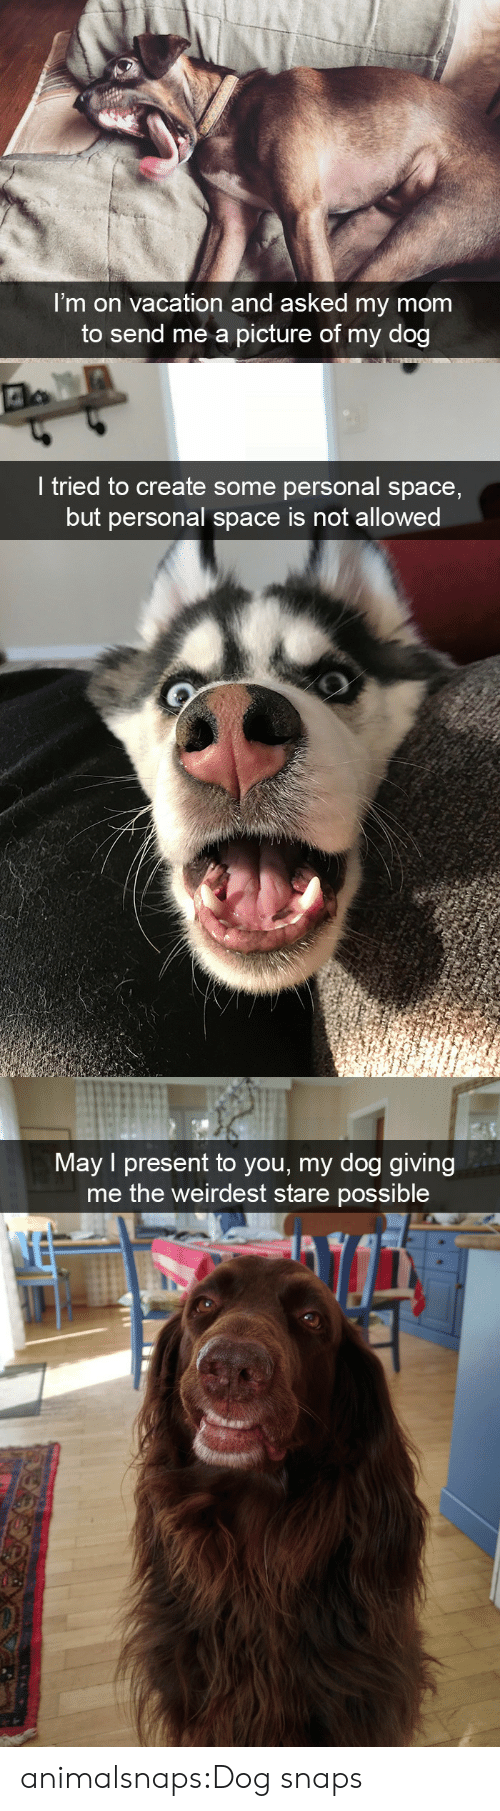 Target, Tumblr, and Blog: I'm on vacation and asked my mom  to send me a picture of my dog   I tried to create some personal space,  but personal space is not allowed   Mav I present to you, my dog giving  me the weirdest stare possible animalsnaps:Dog snaps